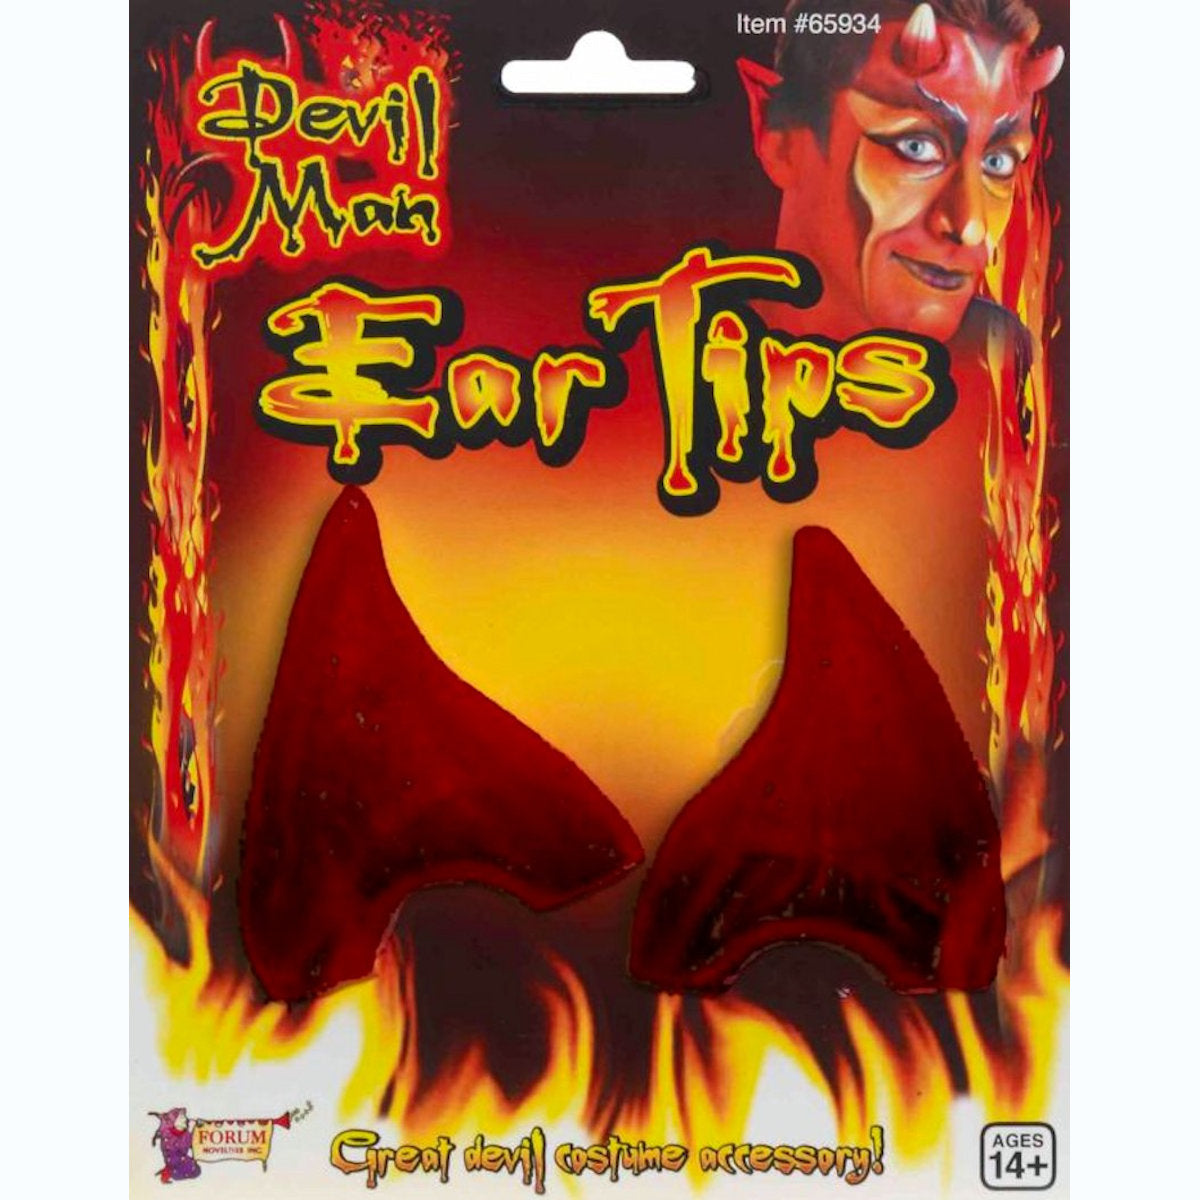 Devil Demon EAR TIPS fancy dress costume accessory